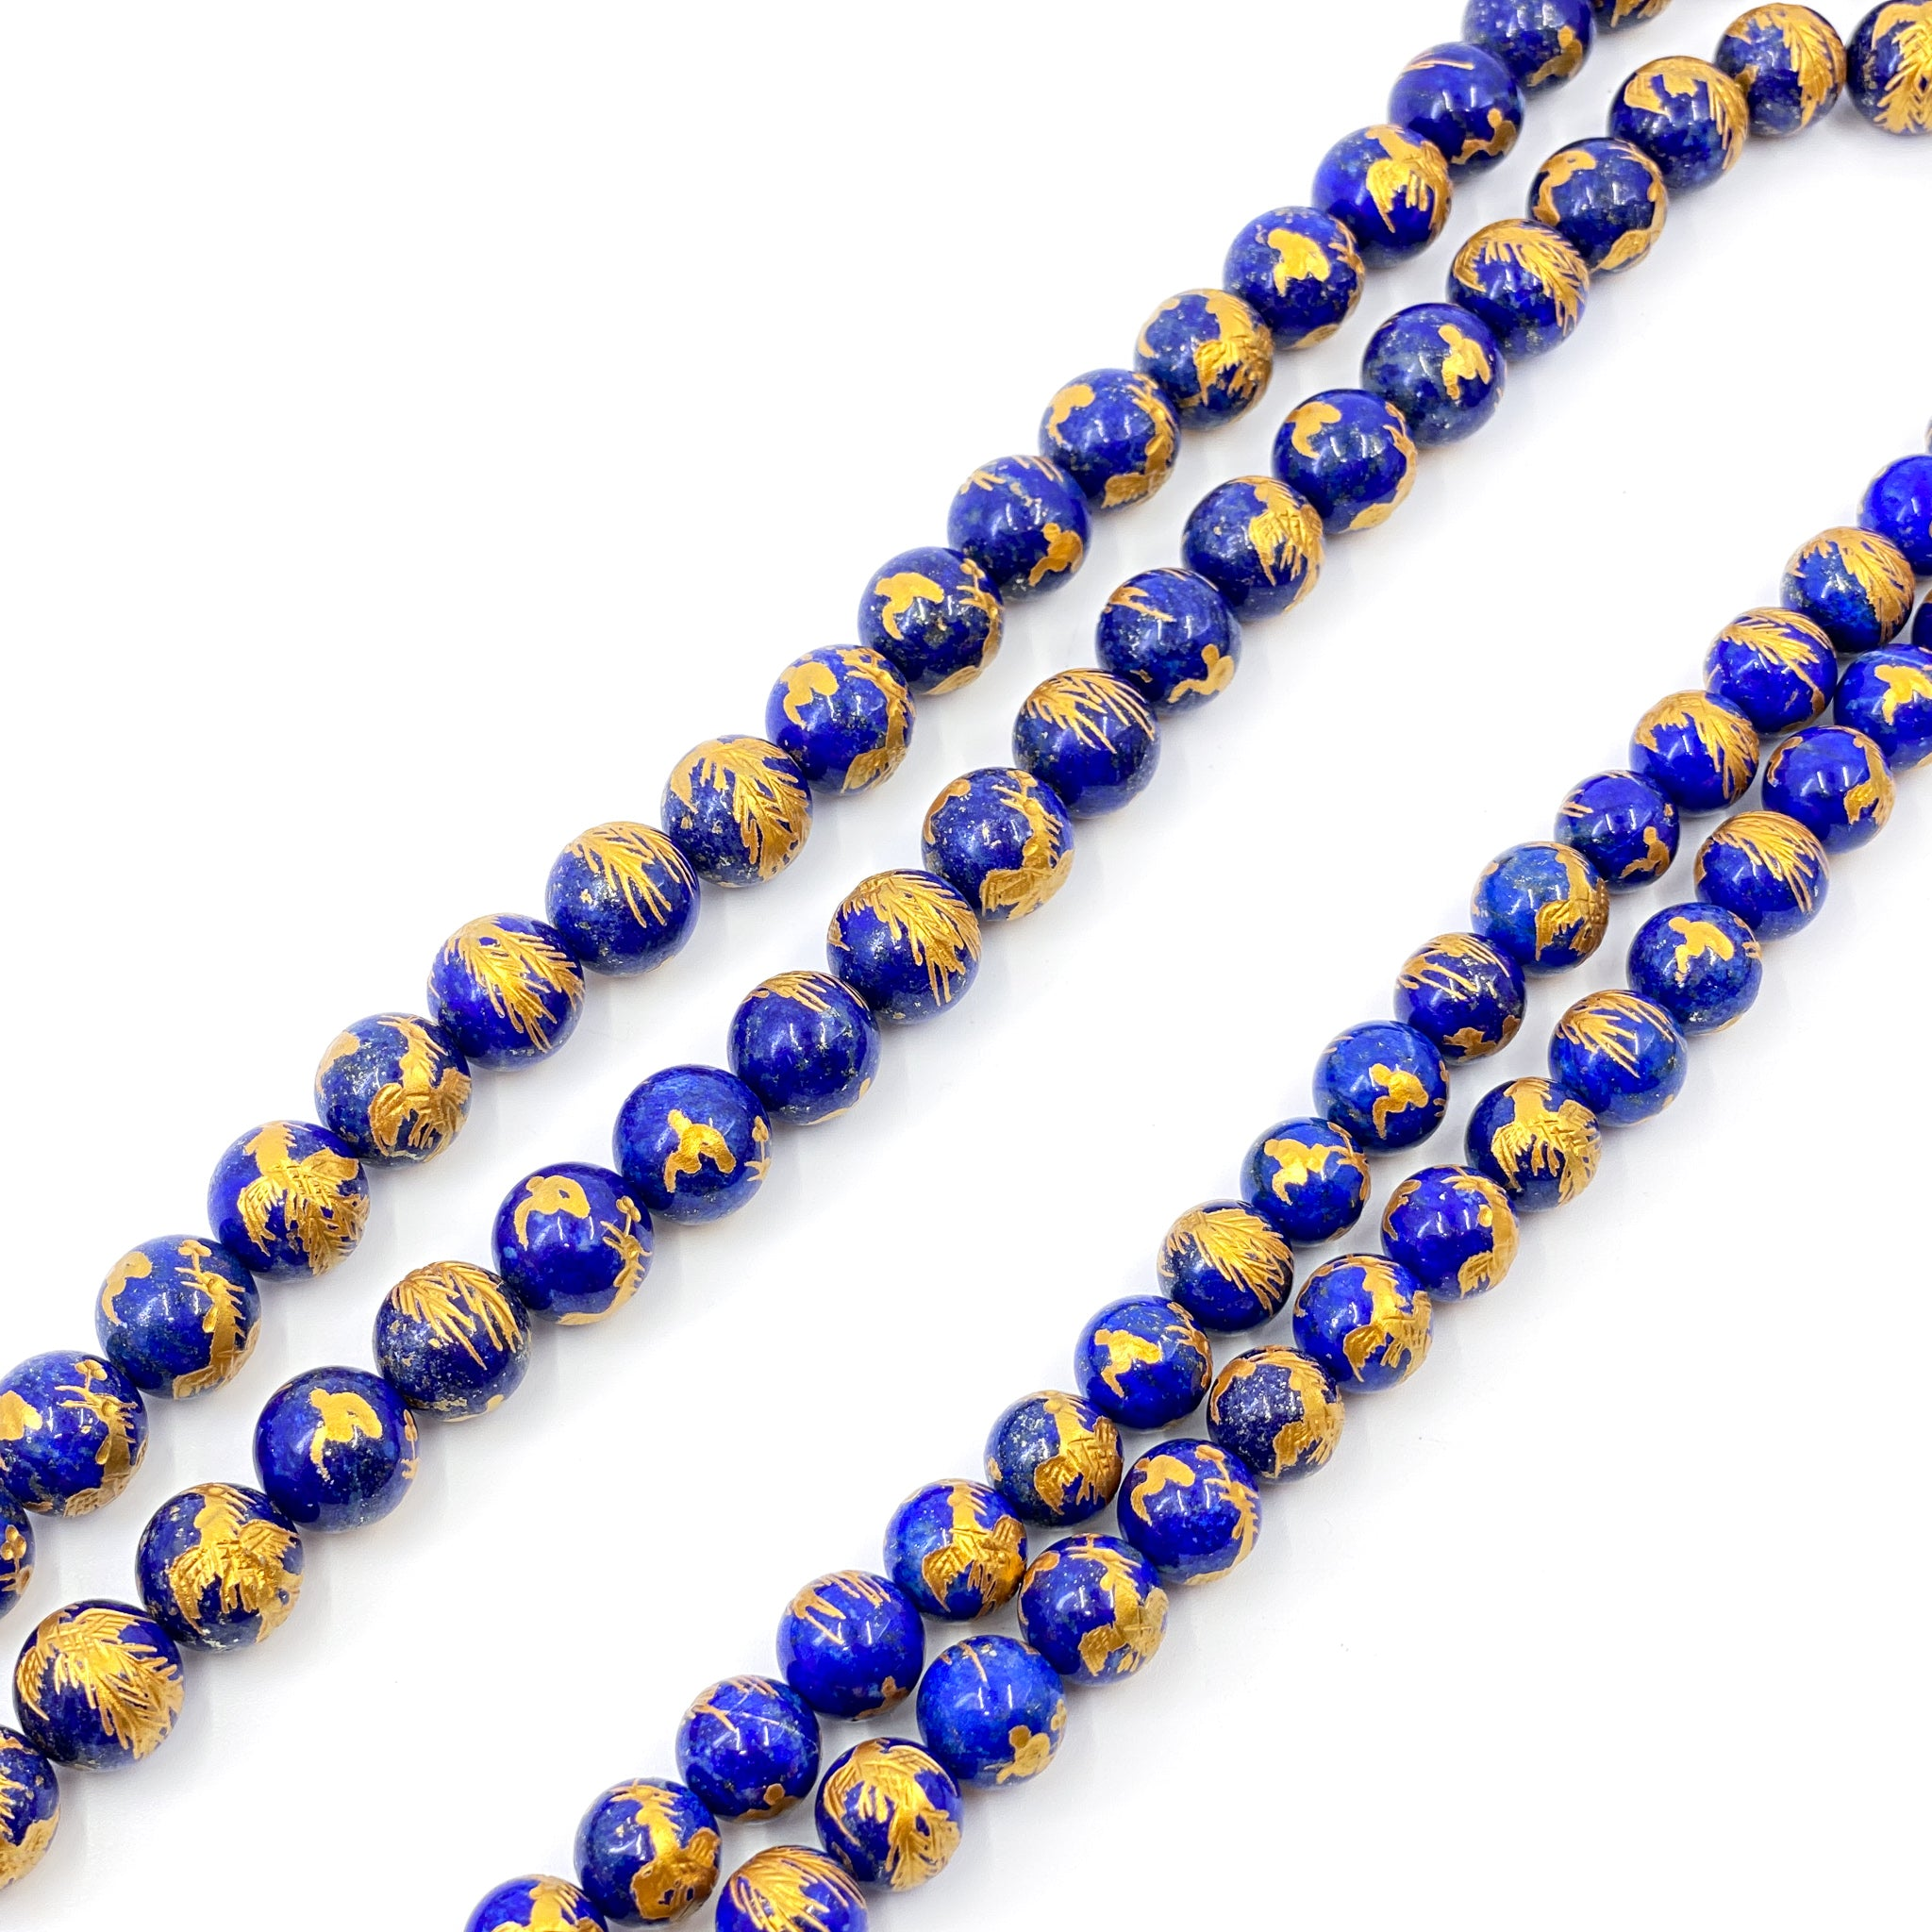 10mm Gemstone Strand - PHOENIX